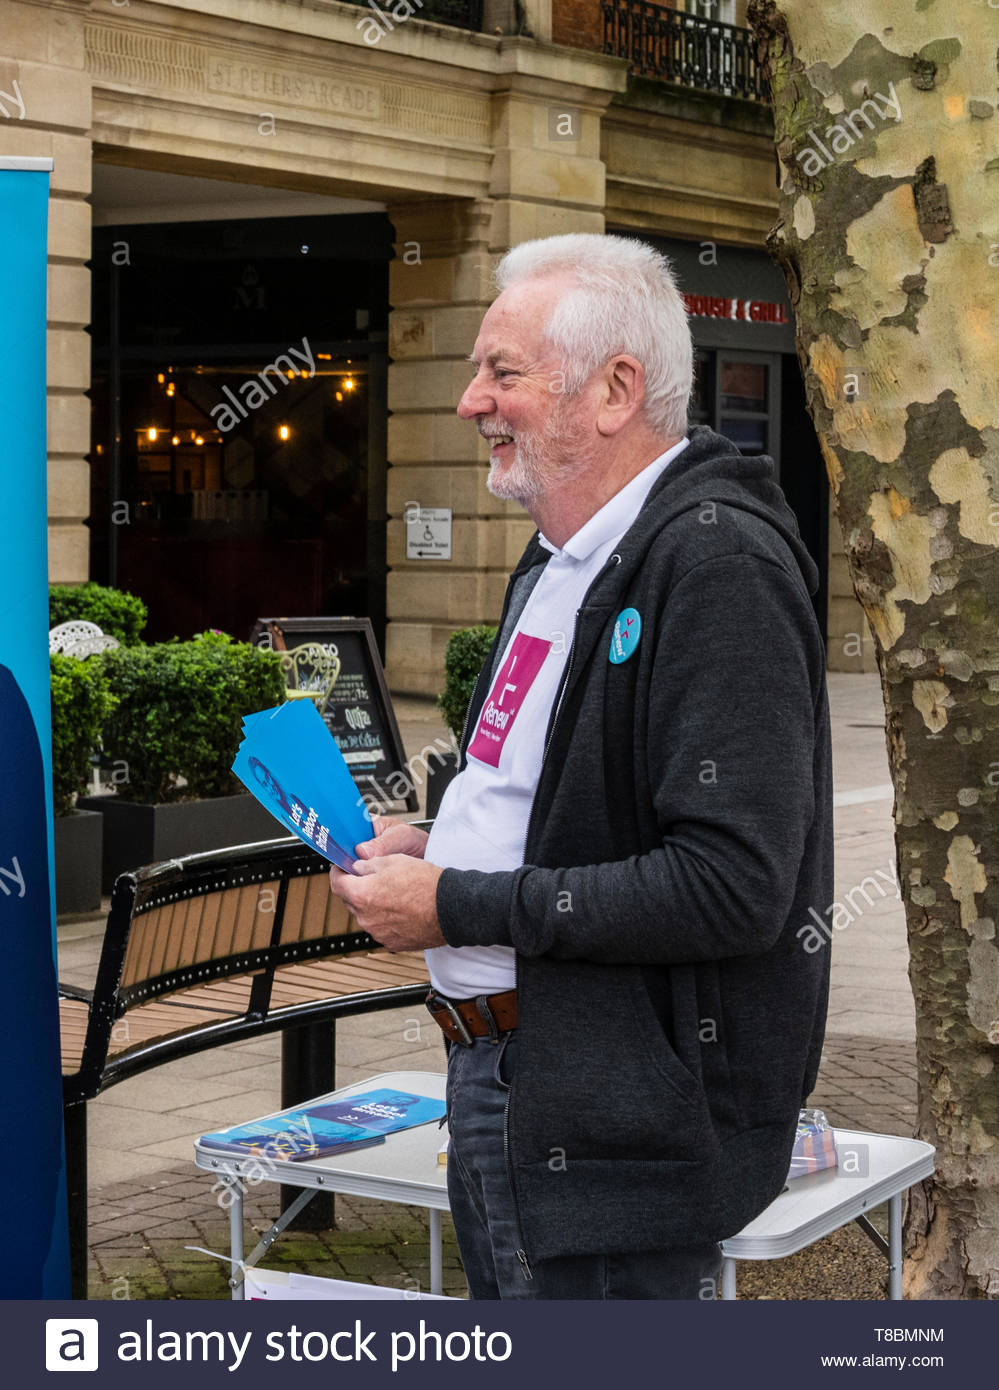 Jim Adcock, candidate for the Renew Party in the upcoming European Parliament elections campaigning in Peterborough on Saturday May 11th. 2019 - Stock Image